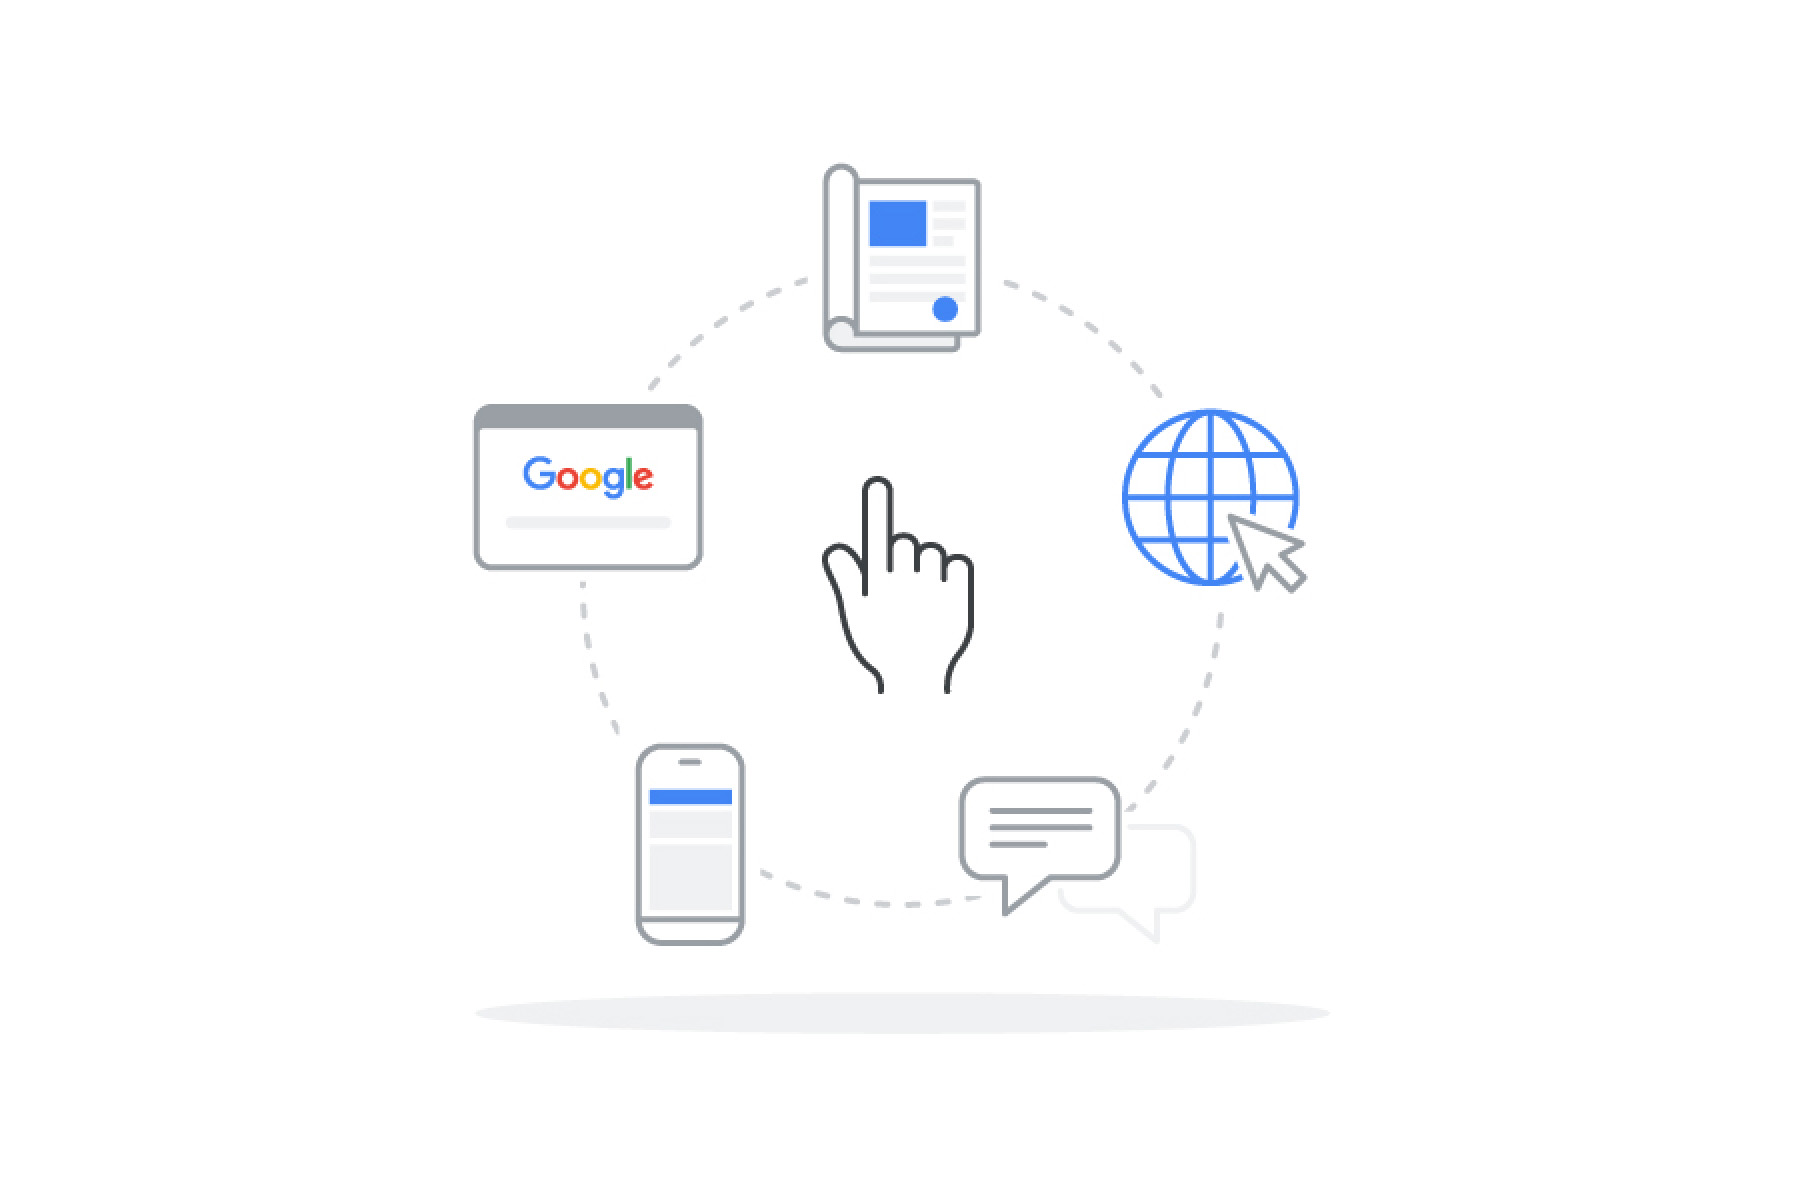 A hand icon surrounded by icons of a Google homepage, chat box, mobile phone, magazine or newspaper, and a globe with a computer mouse arrow